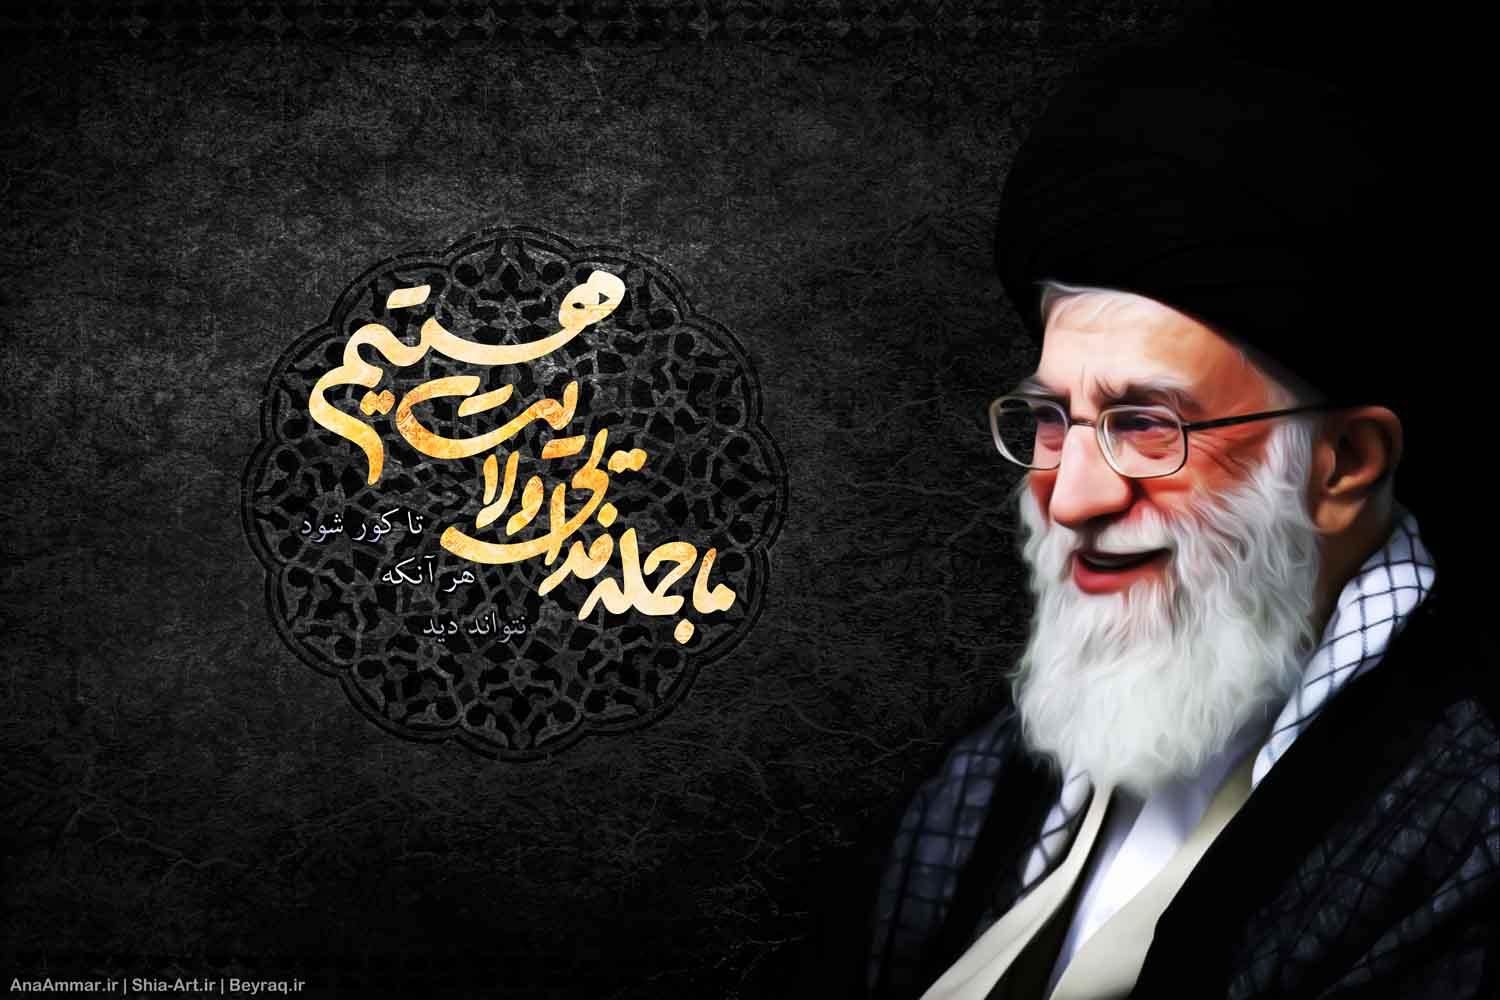 http://s4.picofile.com/file/7747625806/Demo_Imam_Khamenei_Wallpaper.jpg